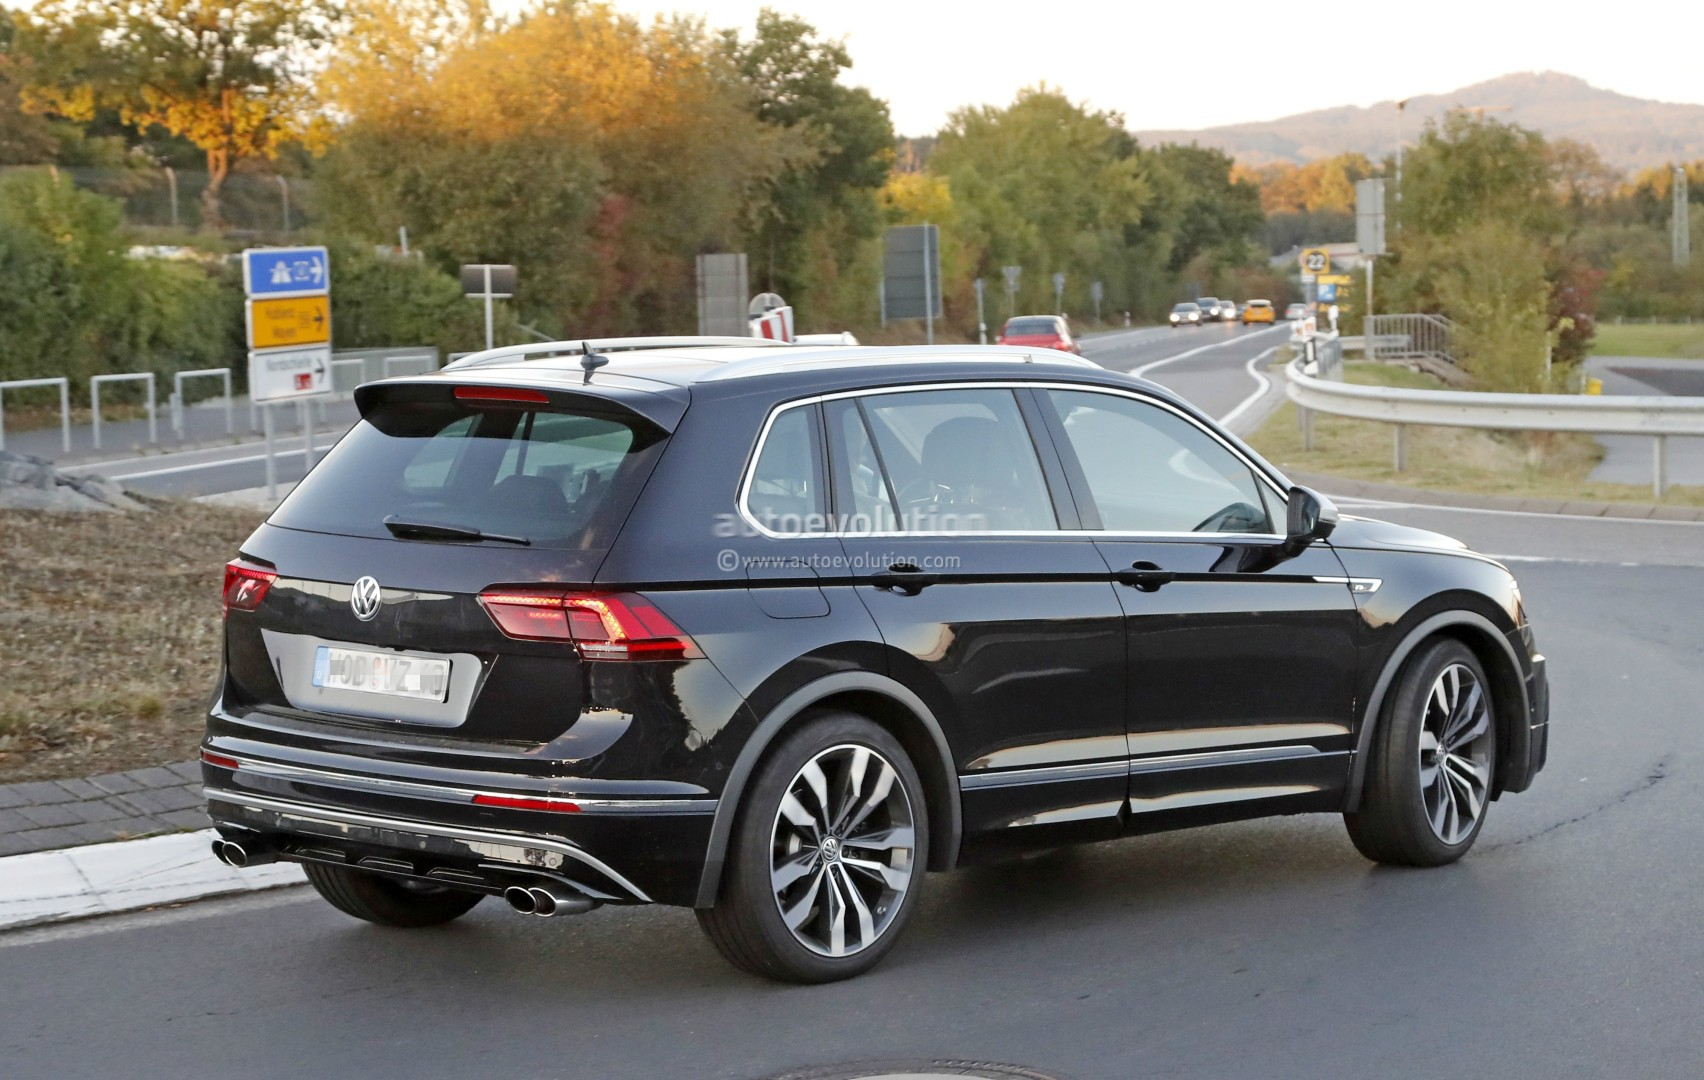 2018 volkswagen tiguan r spotted at nurburgring not. Black Bedroom Furniture Sets. Home Design Ideas